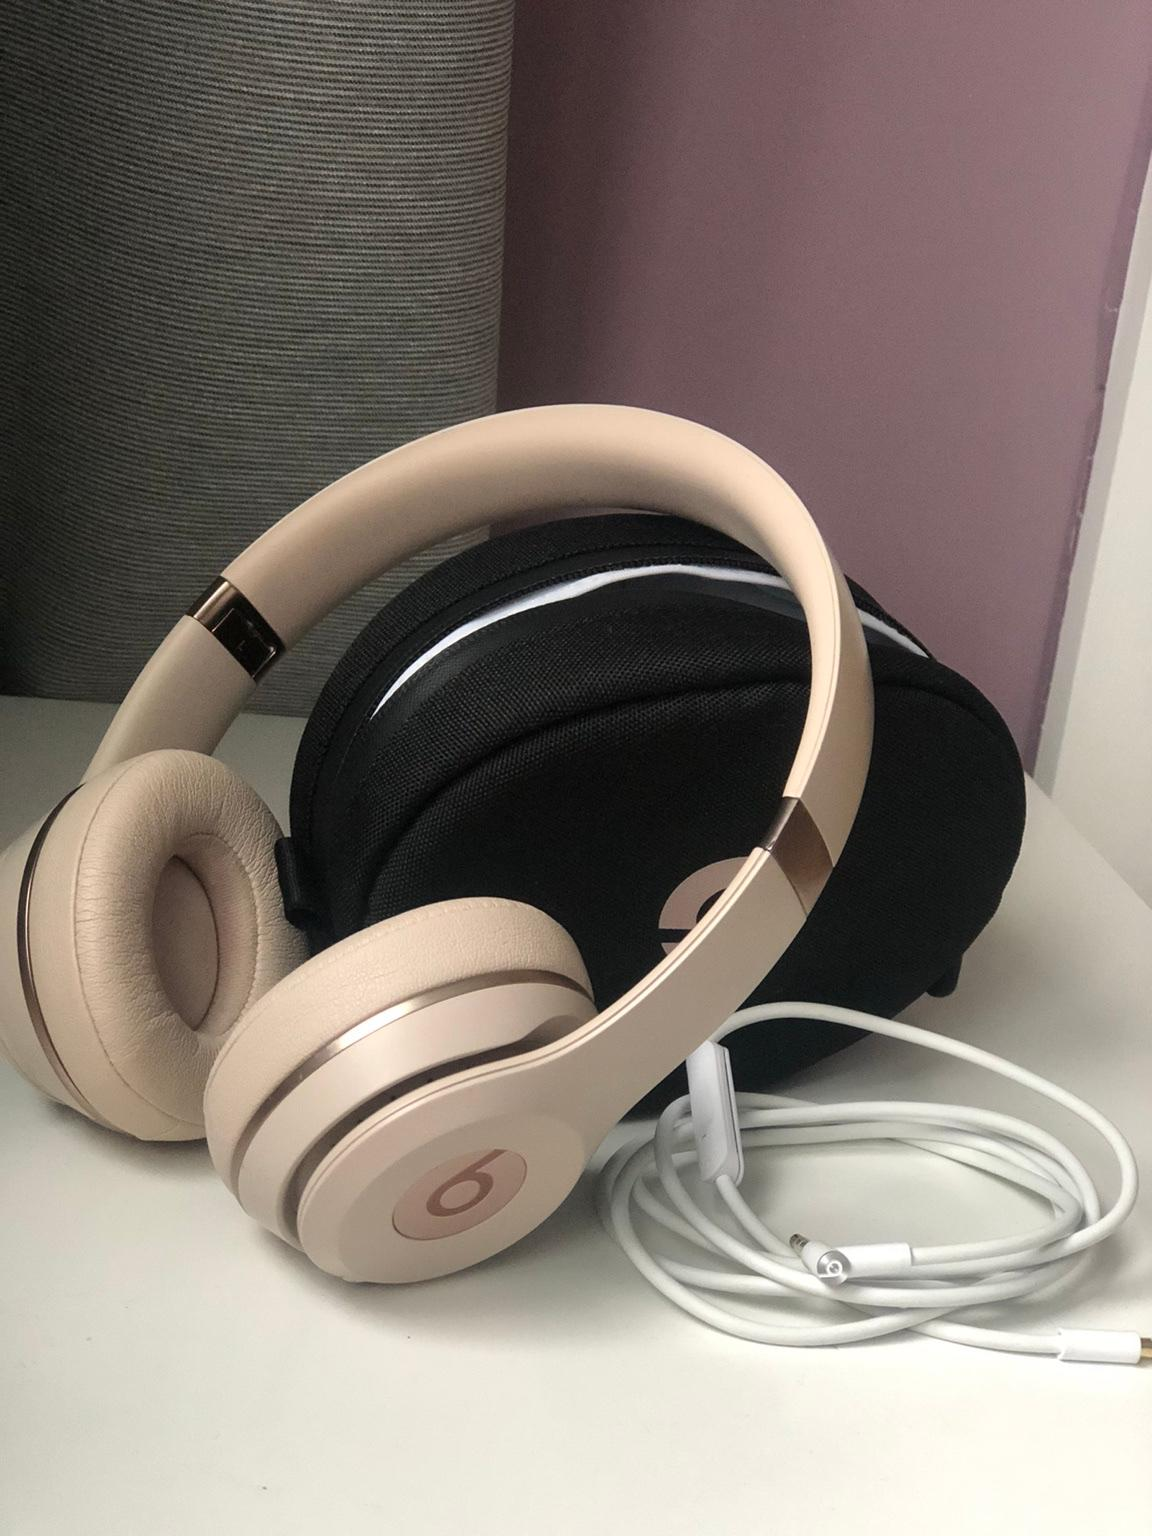 Beats Solo3 Wireless Headphones In W3 London For 80 00 For Sale Shpock